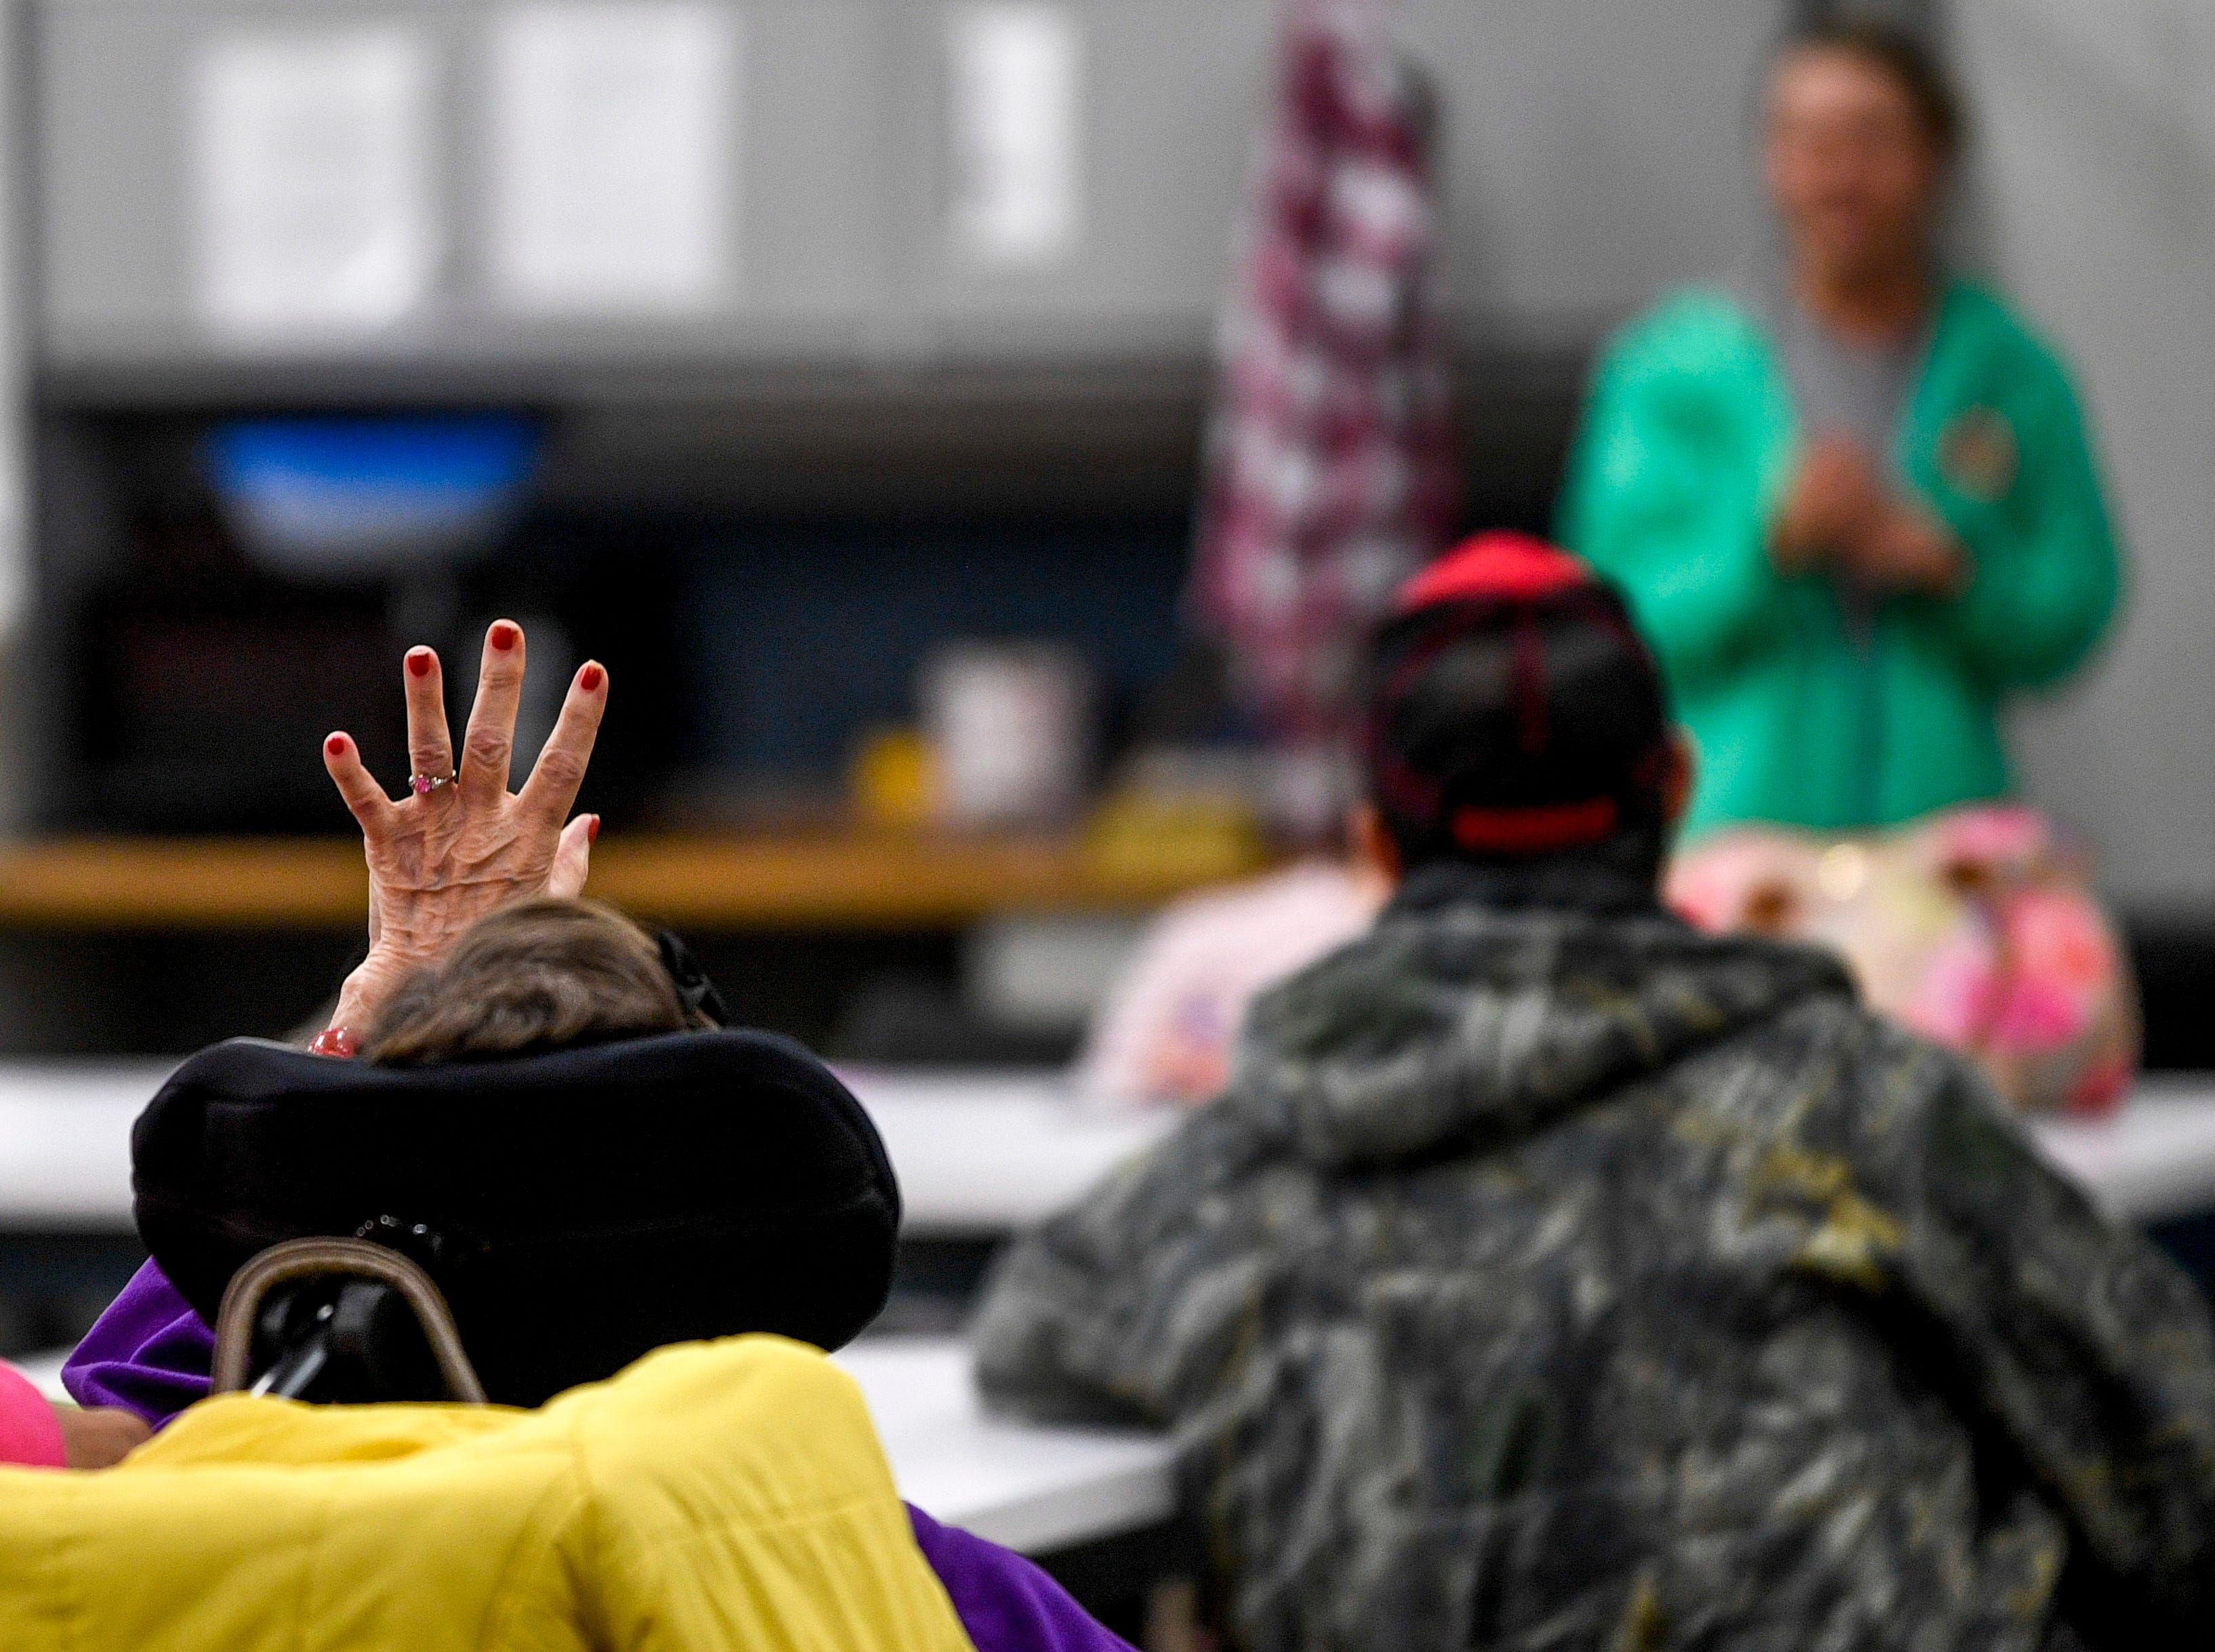 Linda Davis raises her hand to answer a question during class at McNairy Developmental Services in Selmer, Tenn., on Thursday, Feb. 21, 2019.